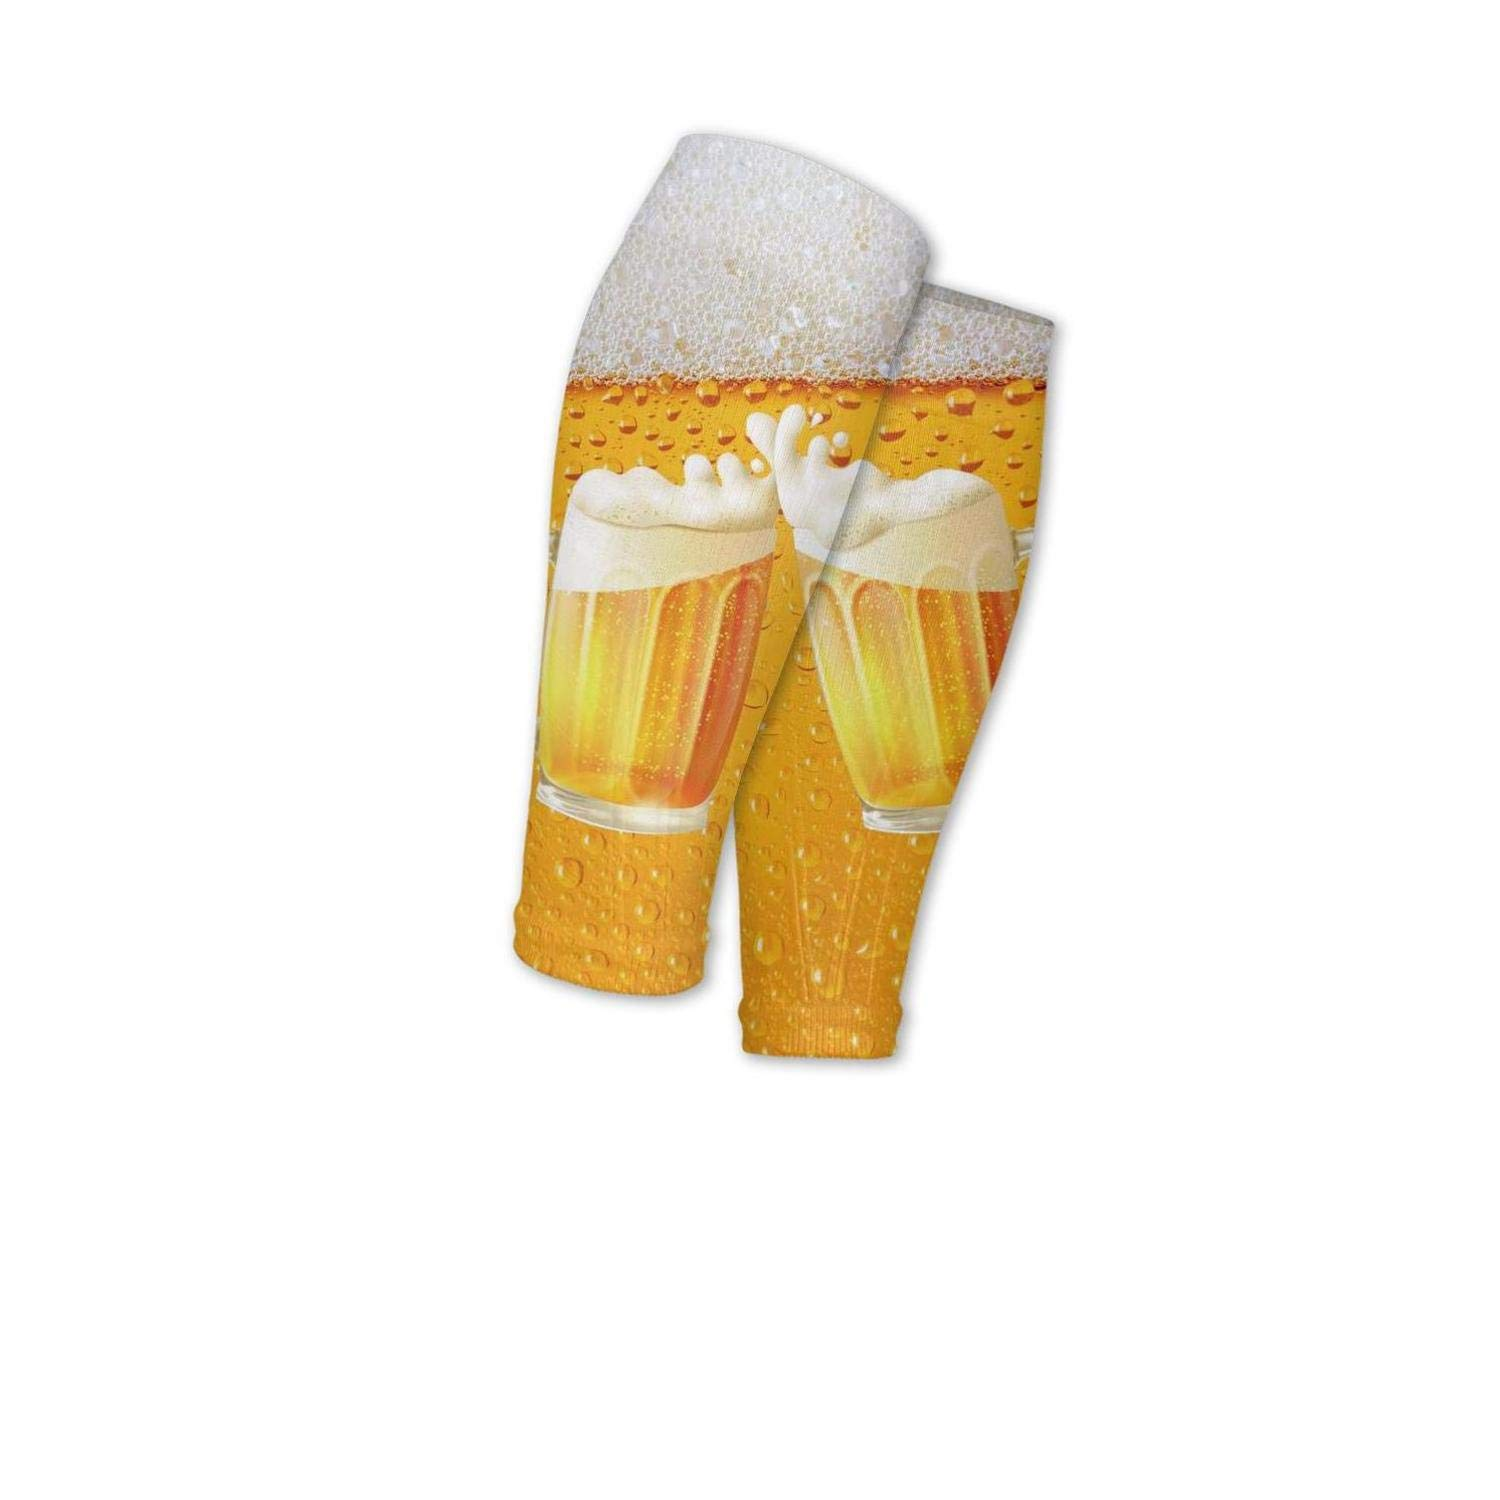 Smilelolly Beer Time Calf Compression Sleeves Helps Pain Relief Compression Sleeves For Calves